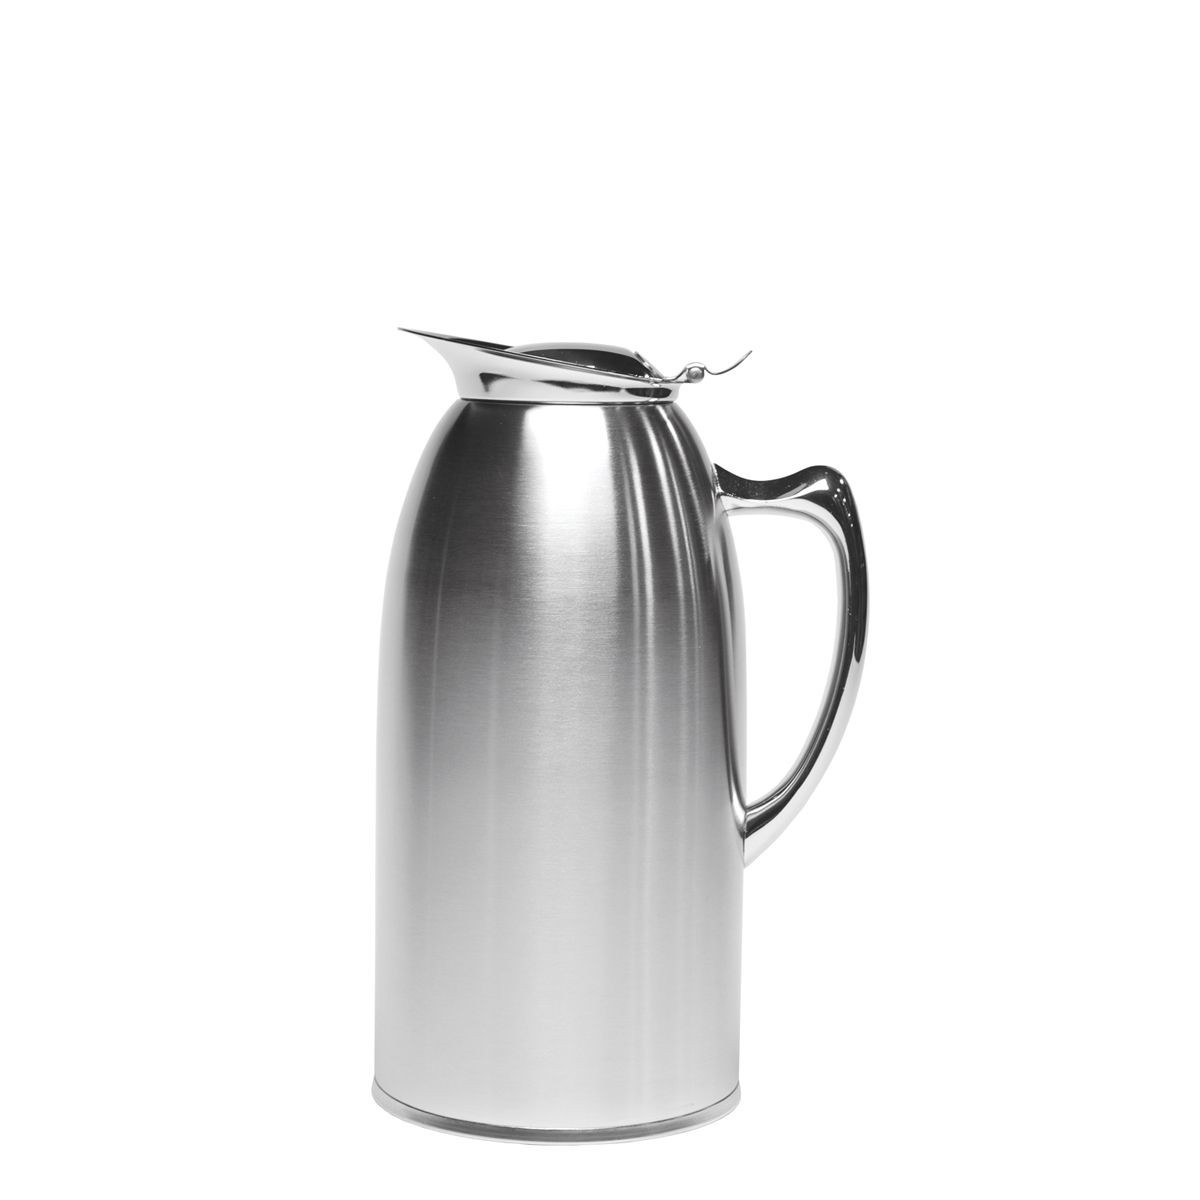 Service Ideas WP15SA Brushed Stainless Steel Insulated Pitcher, 1-1/2 Liter